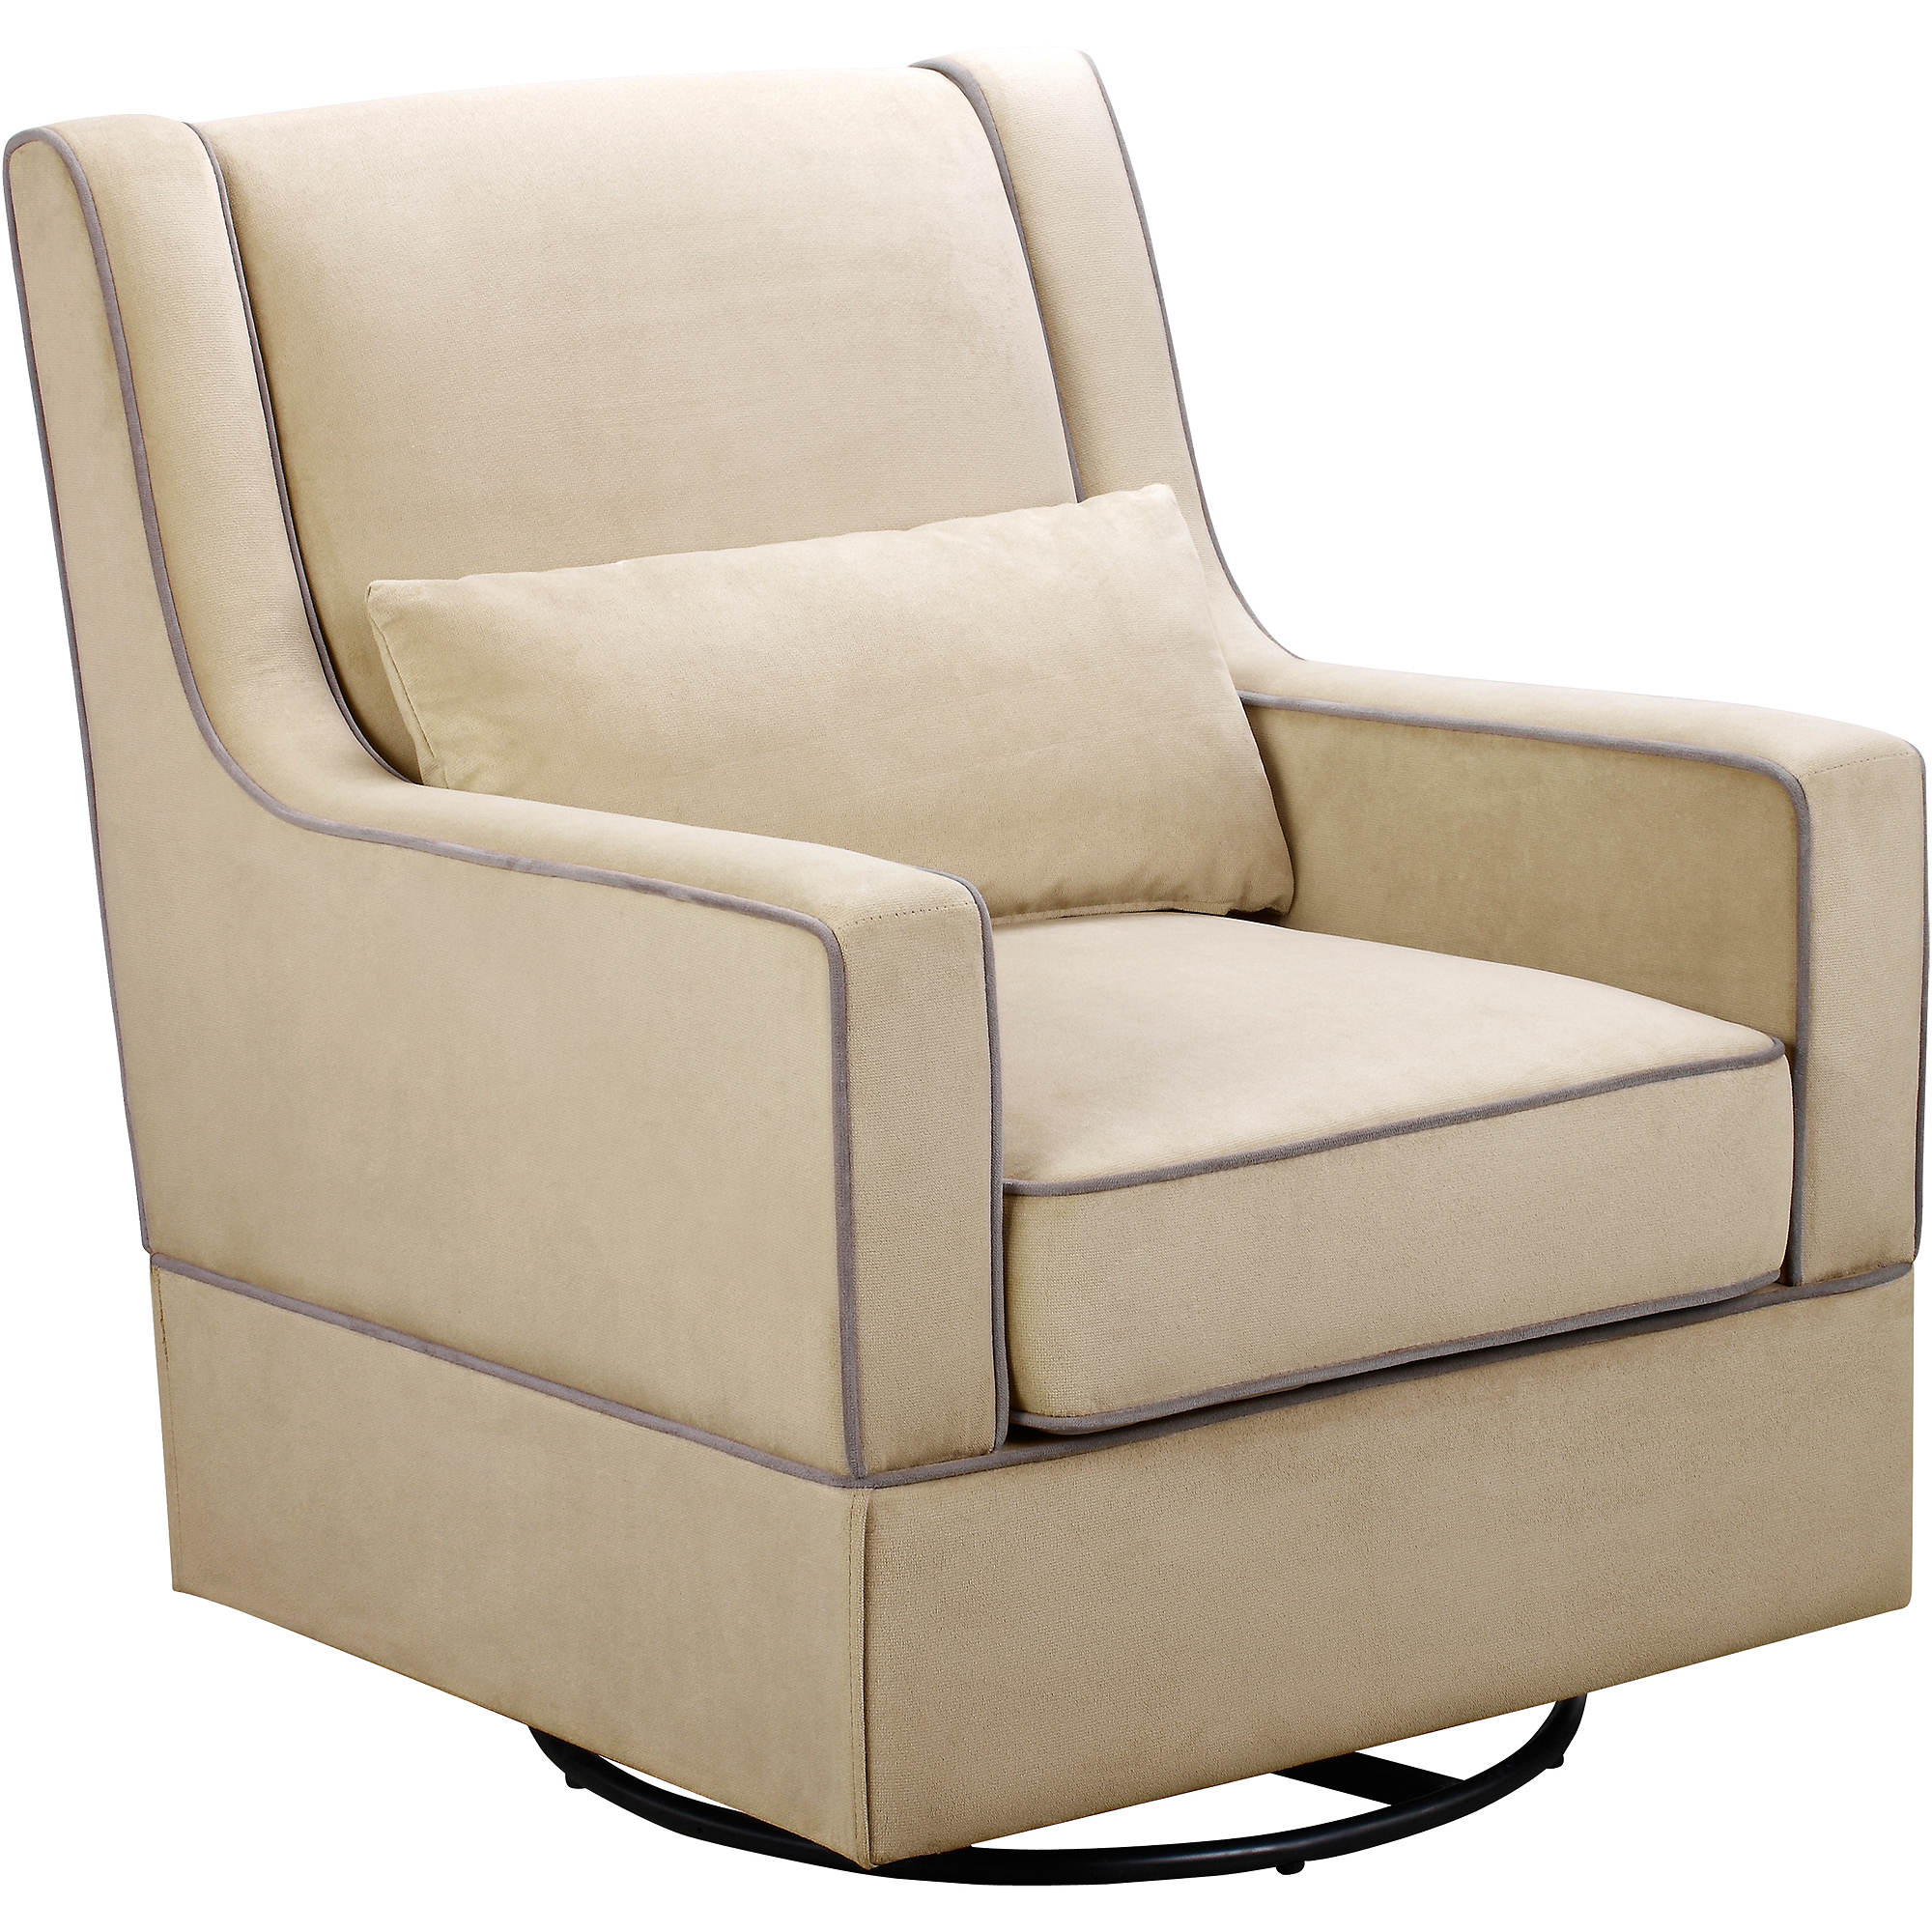 Baby Relax Sydney Swivel Glider – Walmart With Regard To Abbey Swivel Glider Recliners (View 18 of 25)